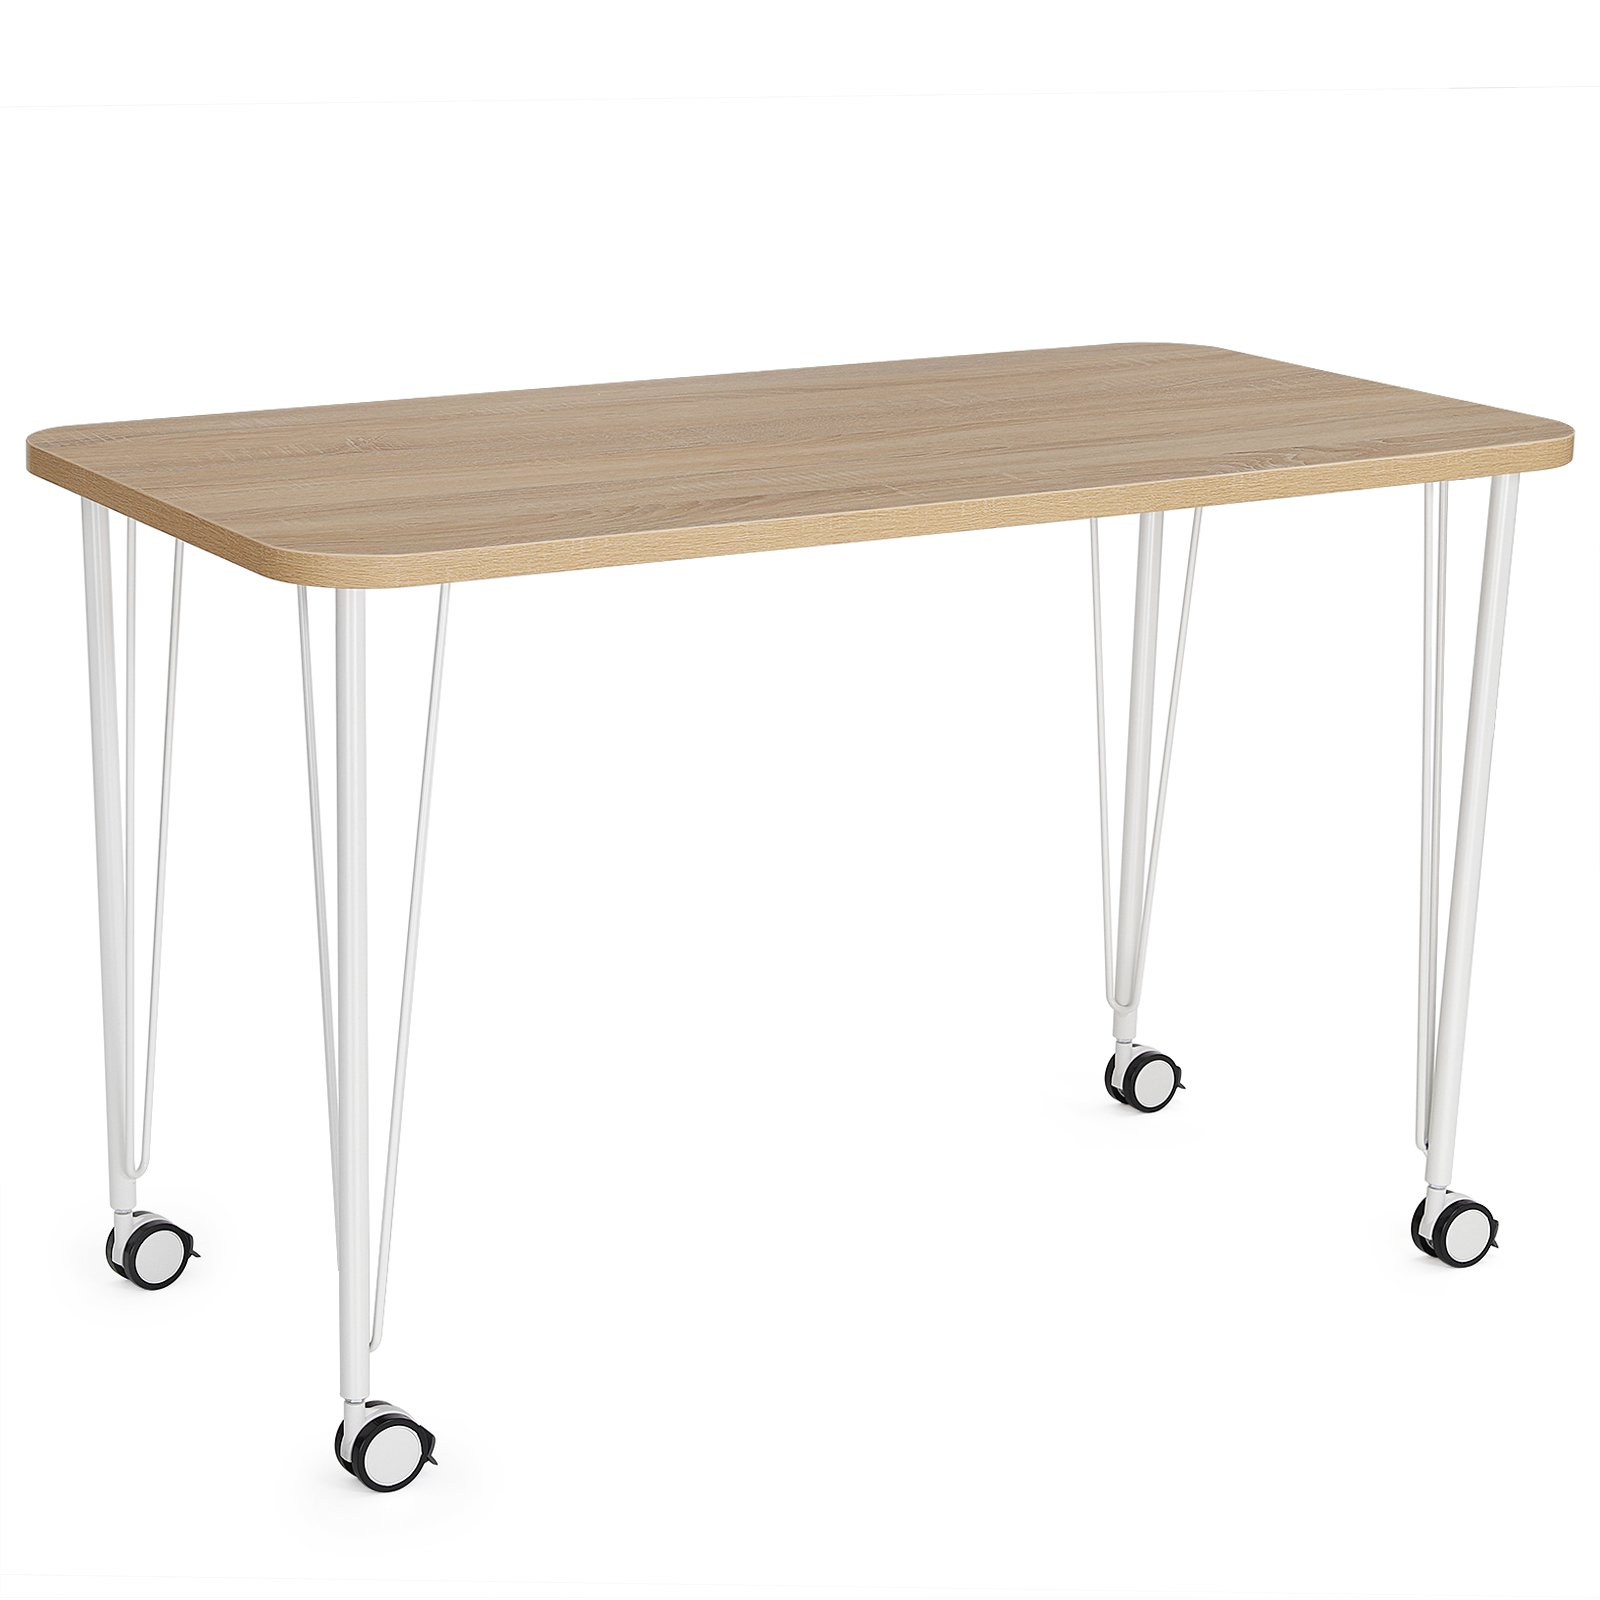 SONGMICS Computer Desk, Study Table, Mobile Dining Table, Easy Assmblely, for Home and Office, Walnut, ULWD15WN